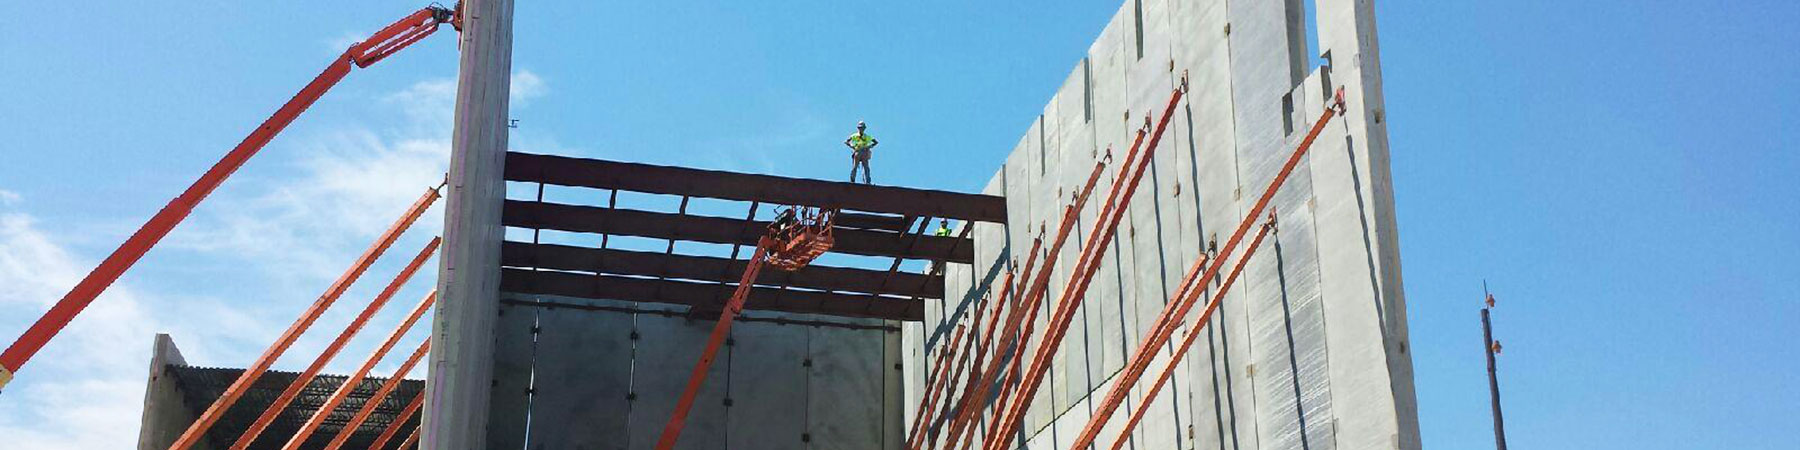 About Us | Iron Workers Local 67 | Central Iowa